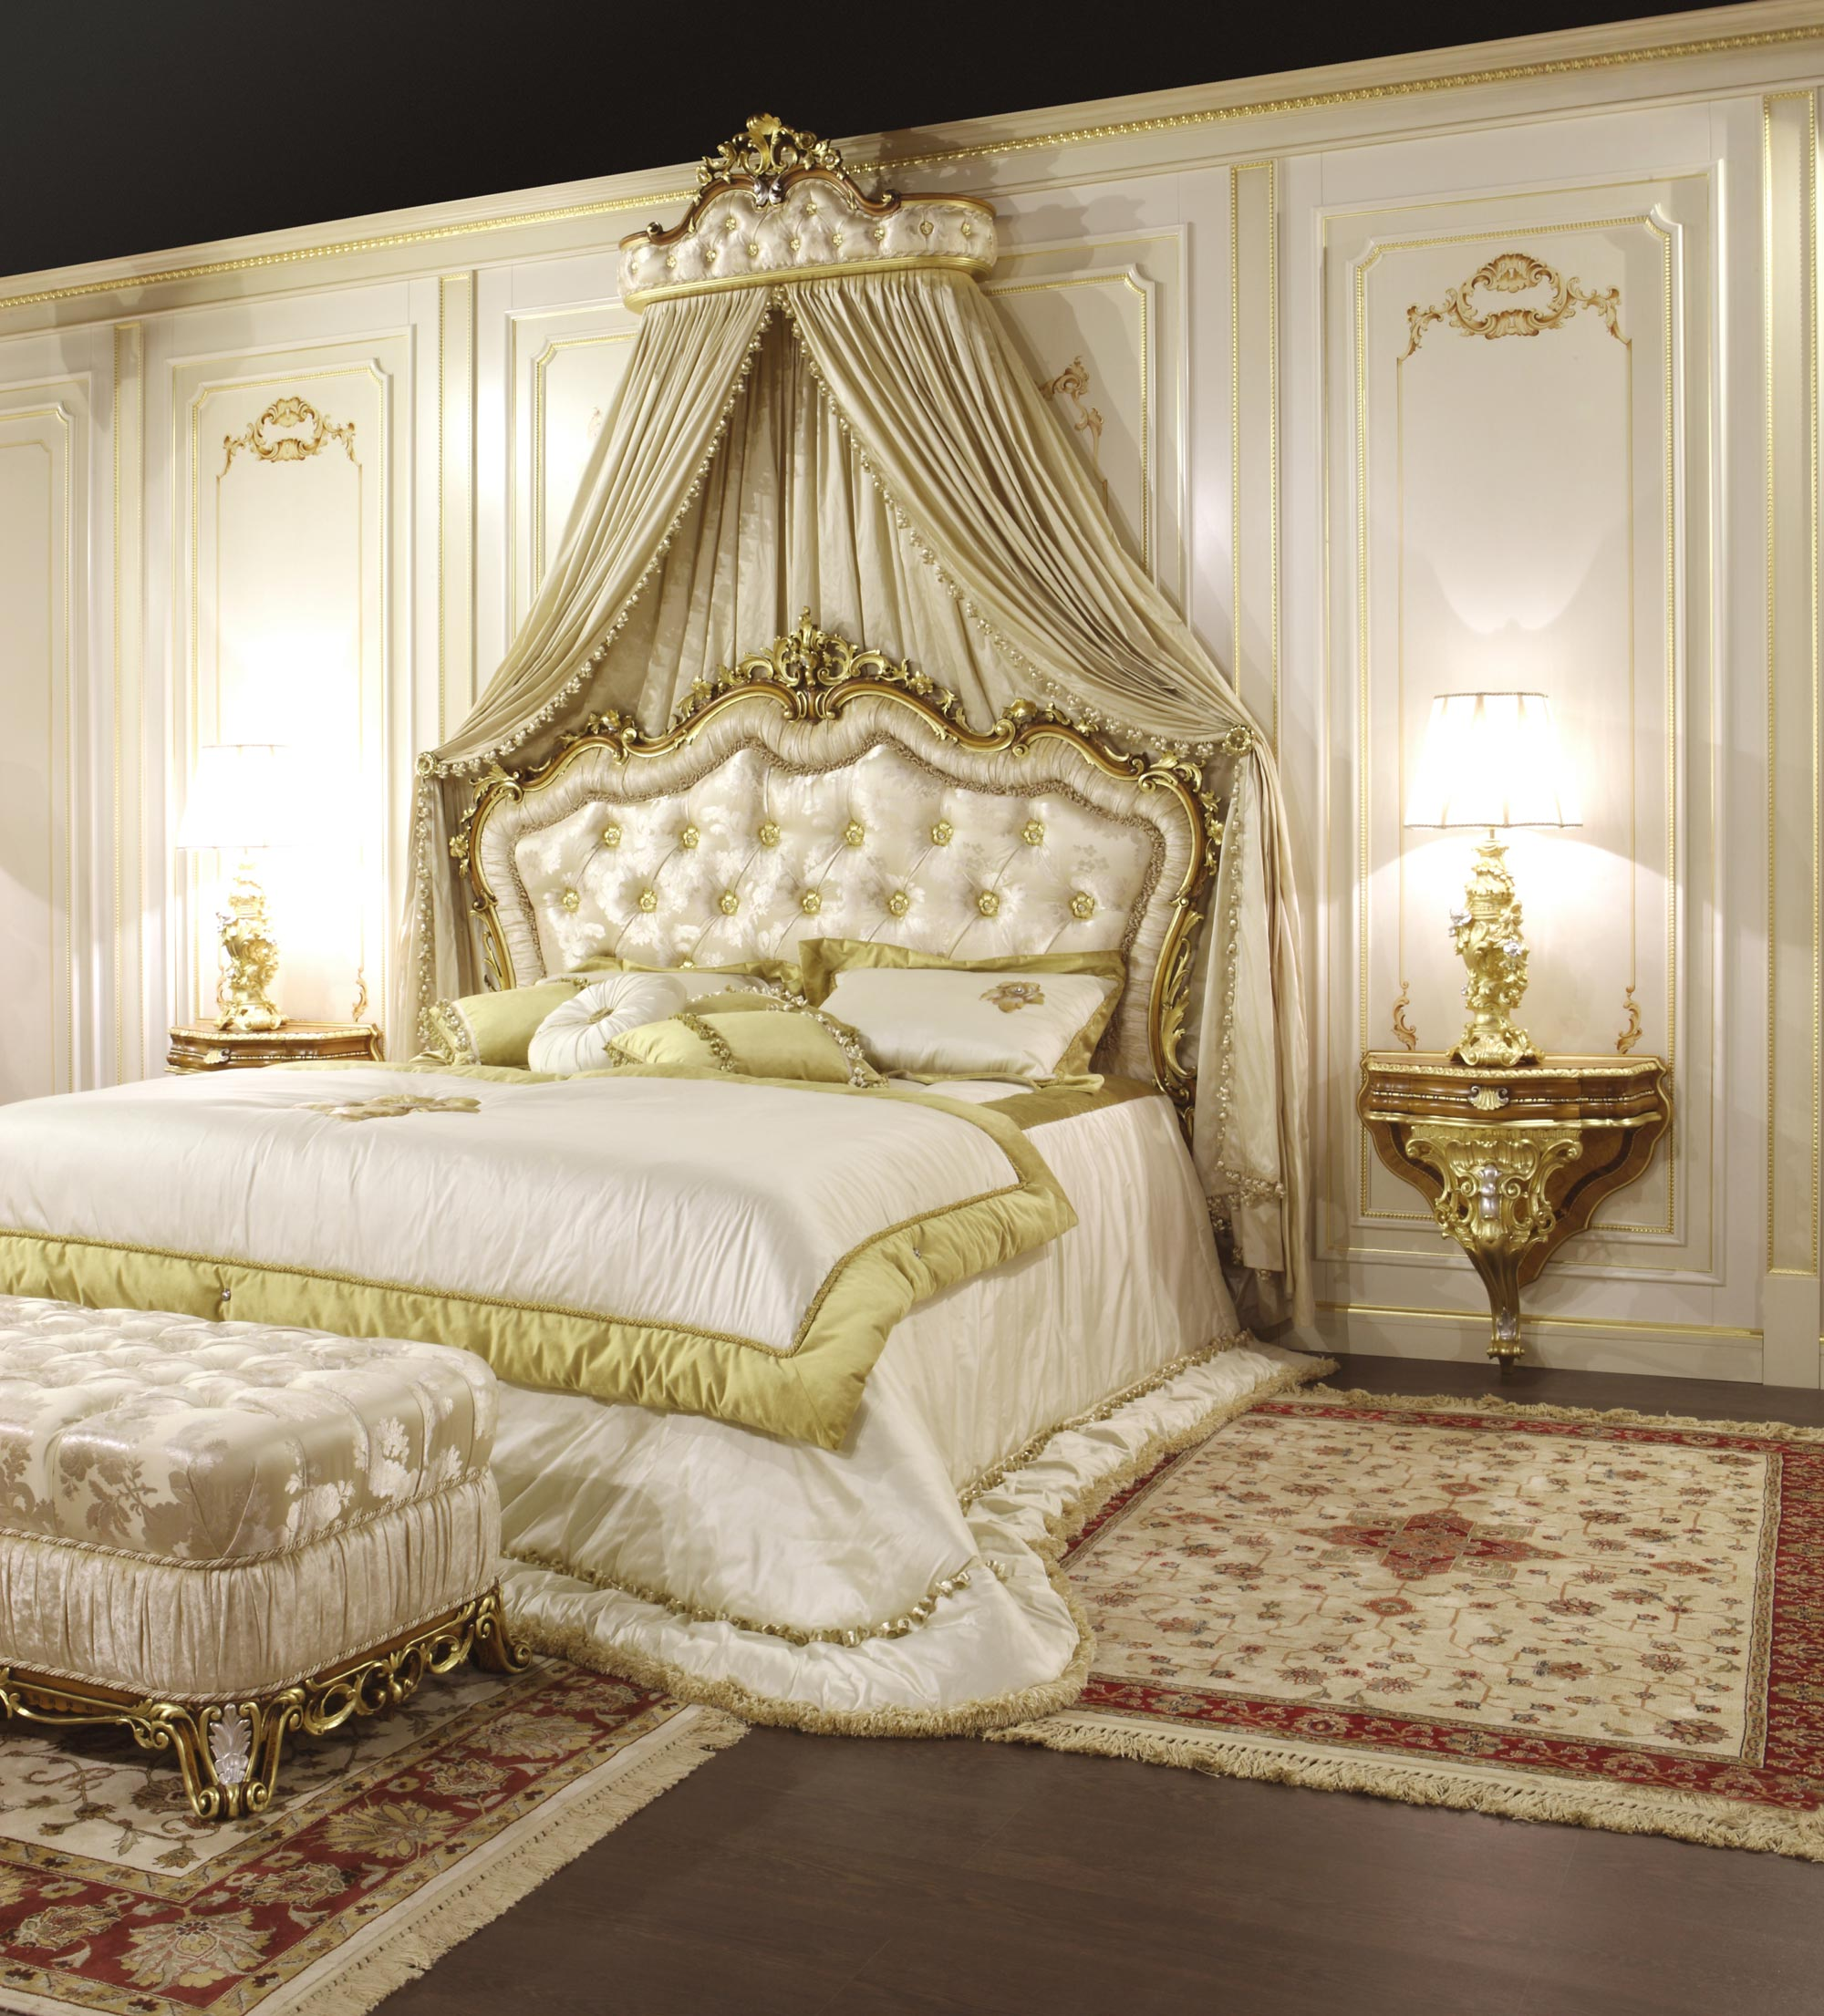 Baroque classic bed art 2013 vimercati classic furniture - Camera da letto barocco moderno ...